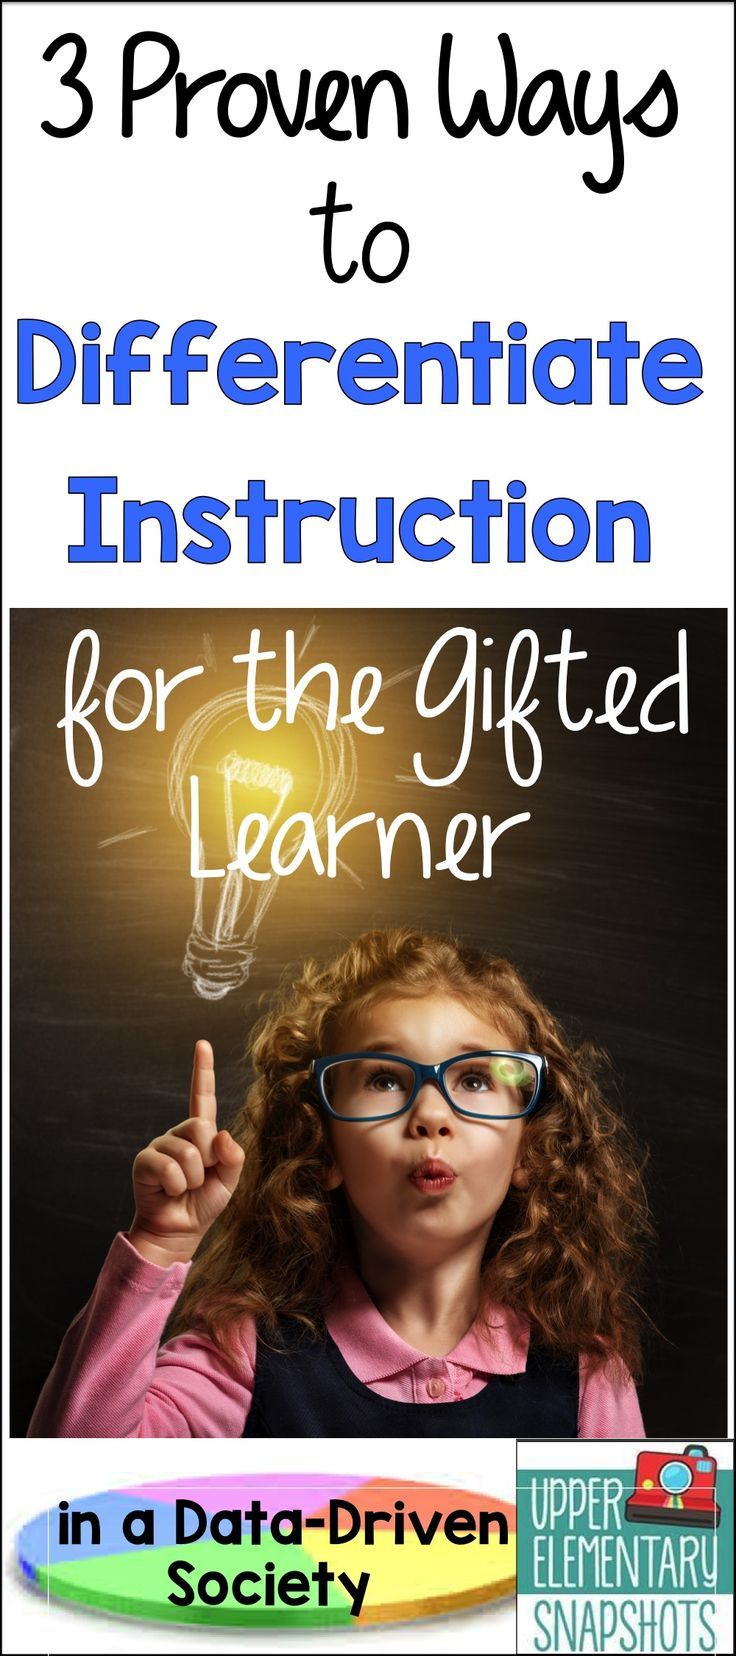 How can you differentiate instruction for the gifted learner?  Use these three proven ways to guide your instruction and you will see results!